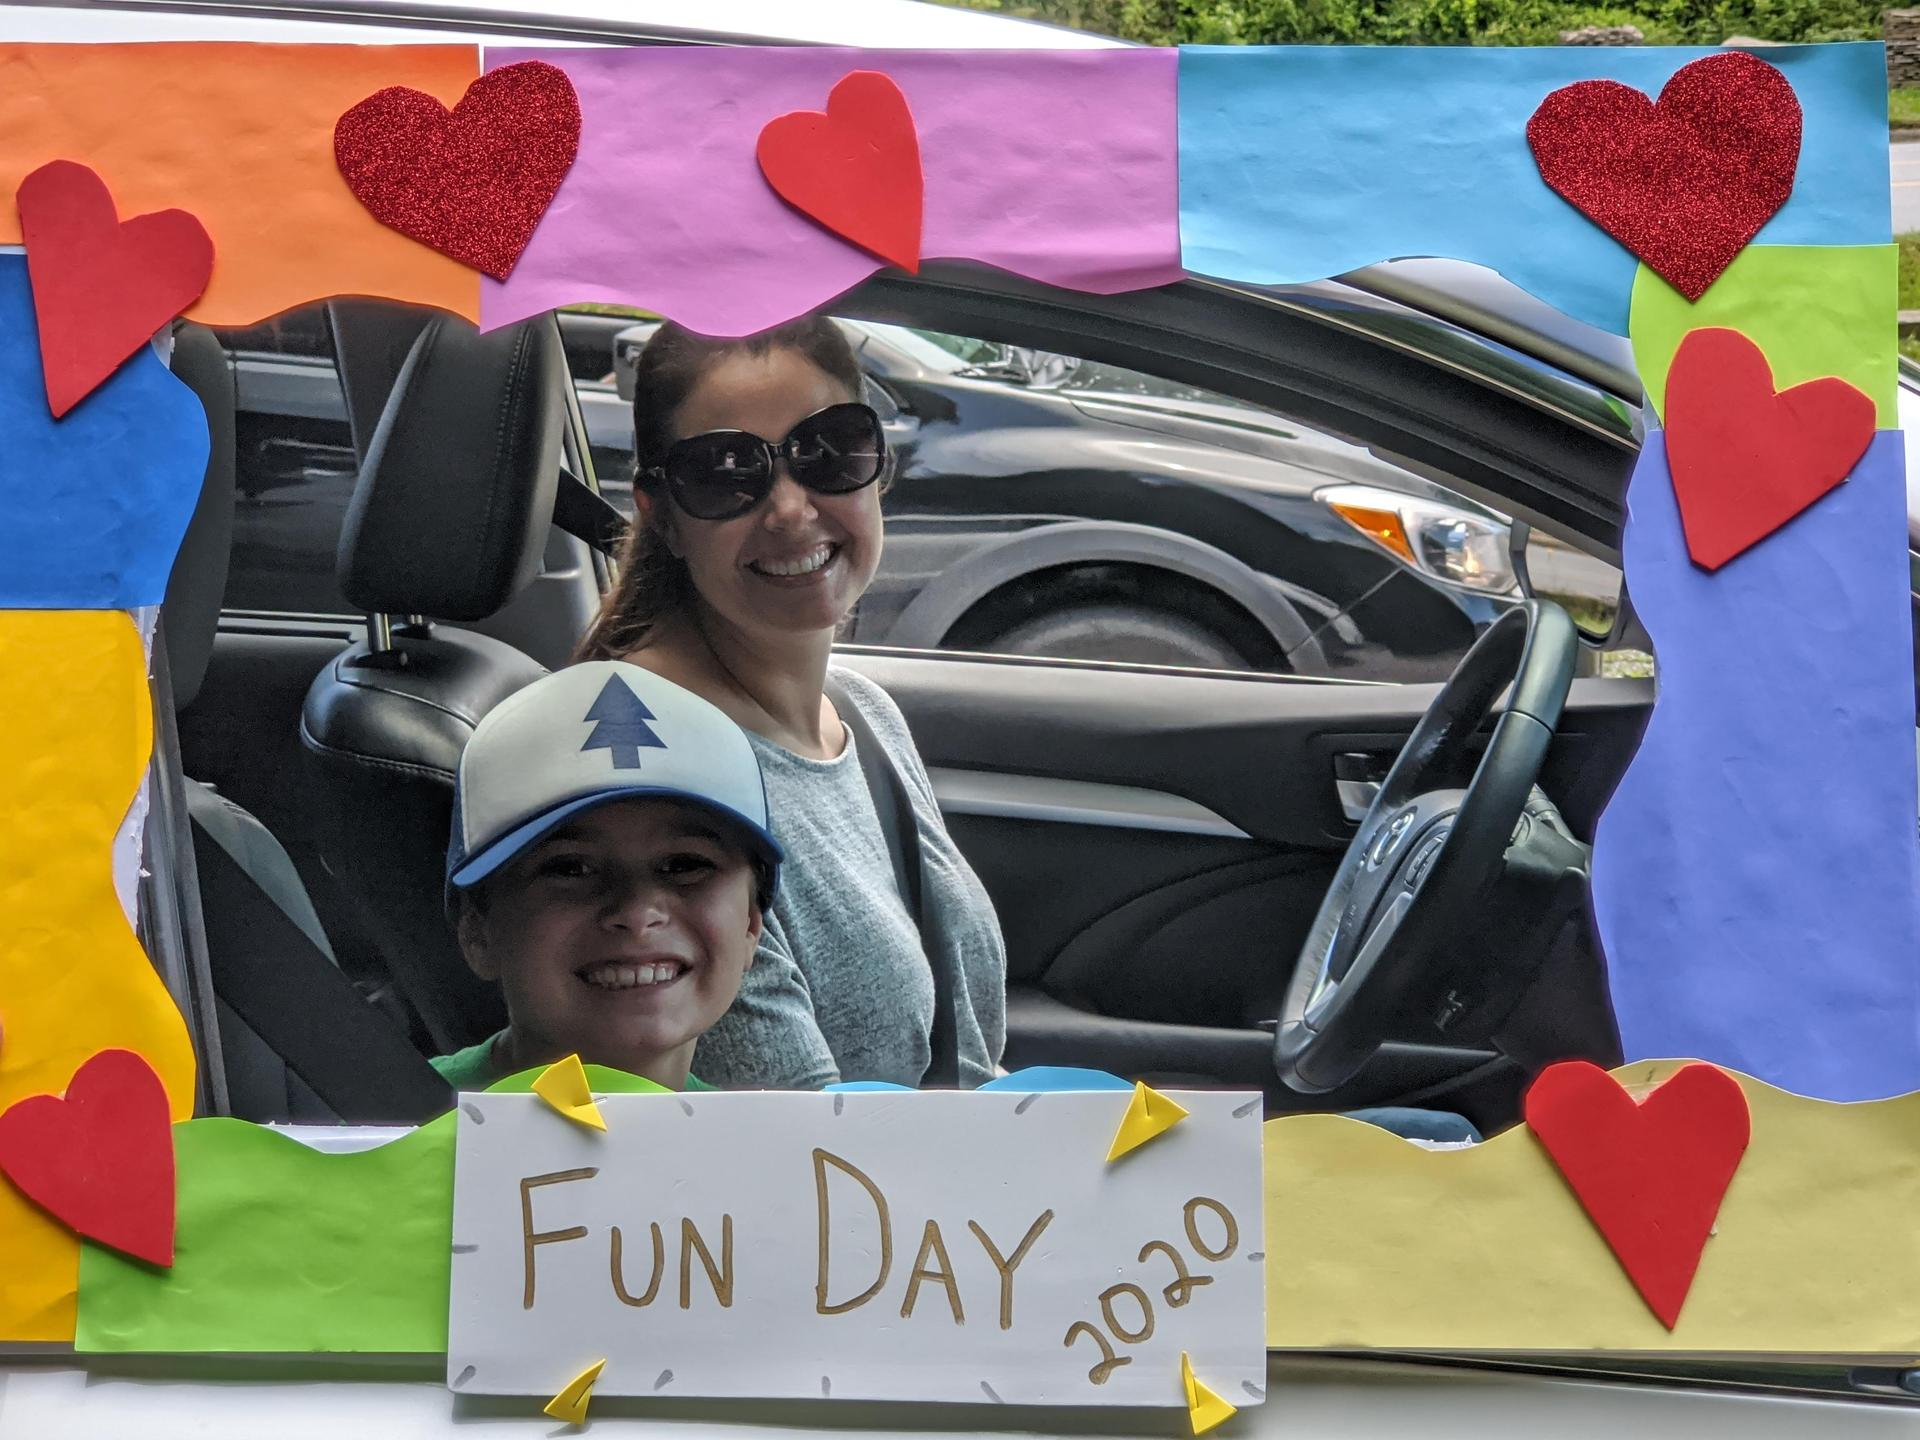 Parent and student drive up on fun day for a photo booth